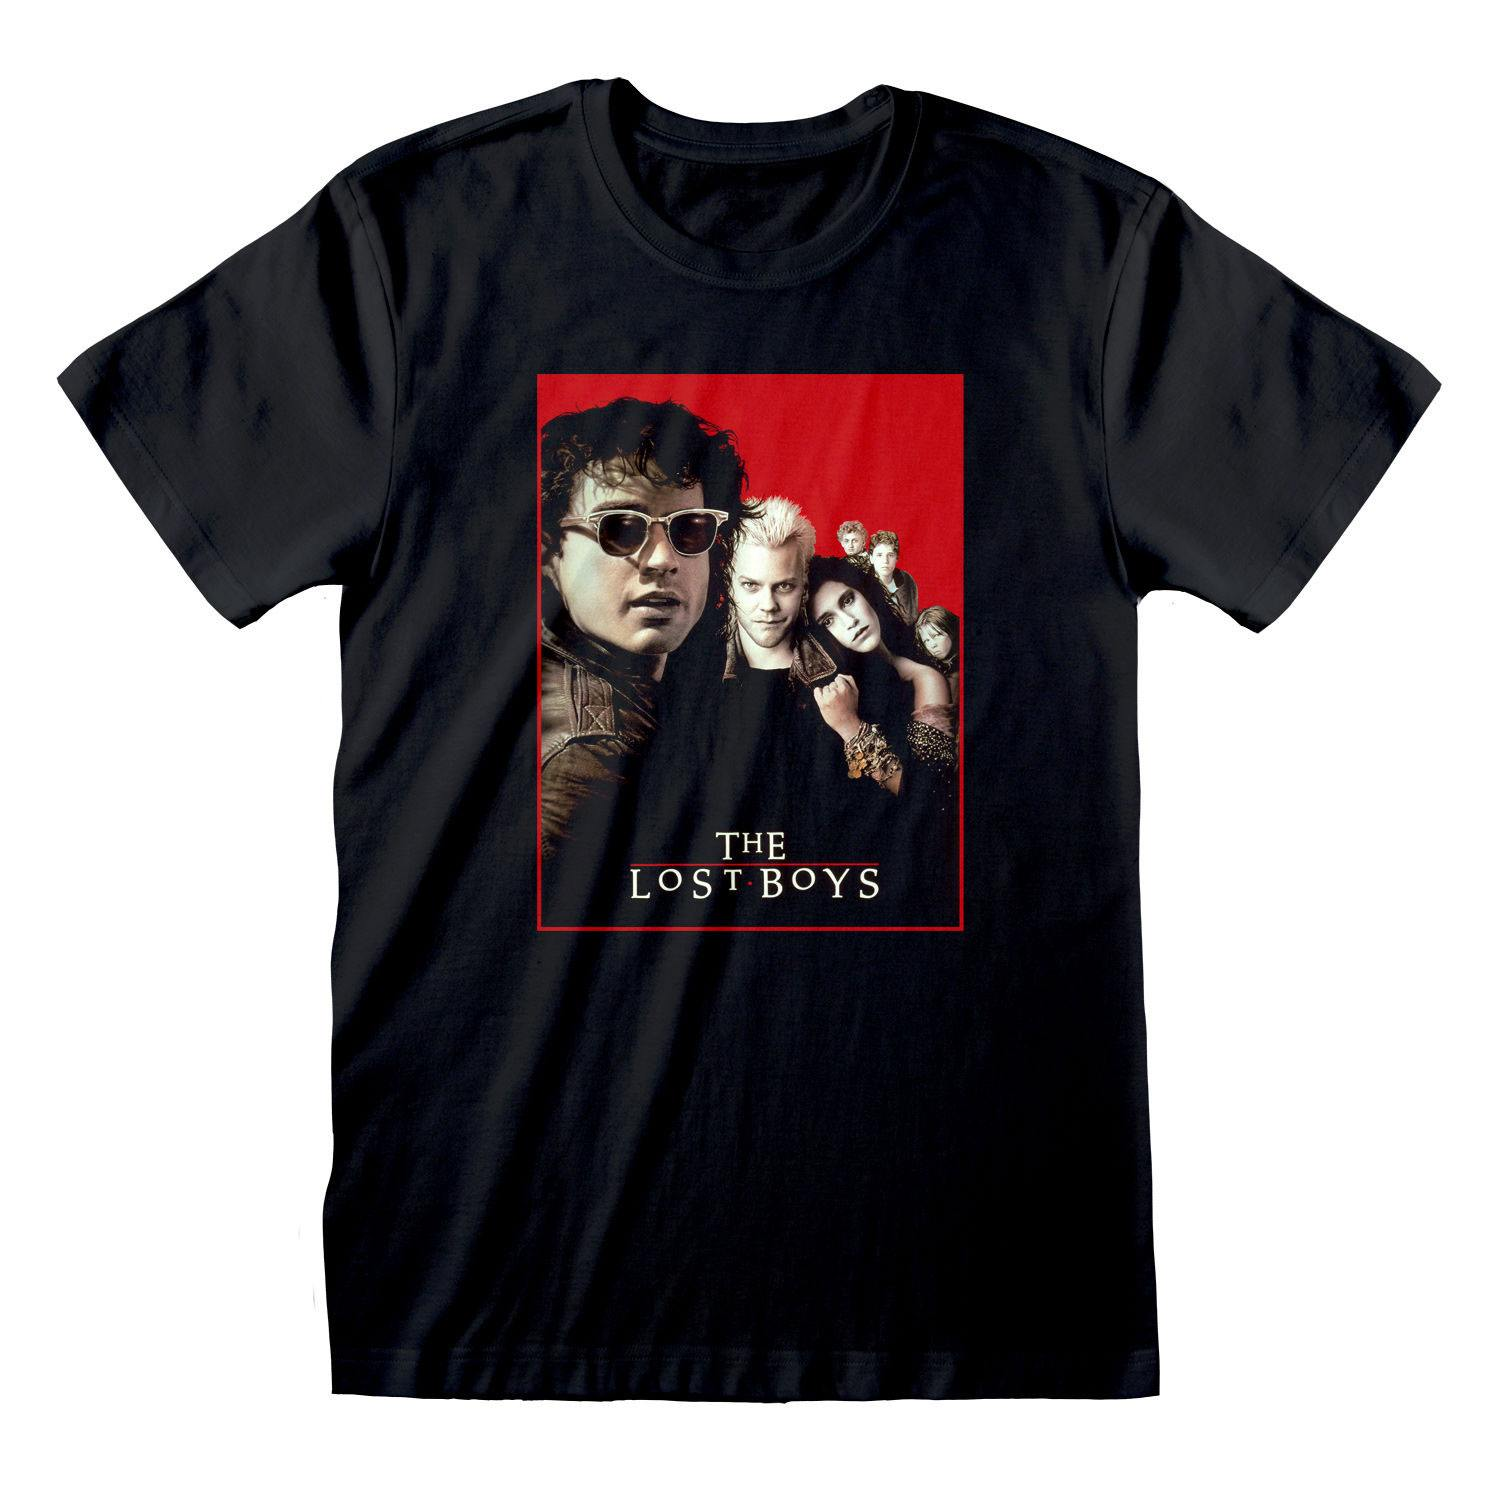 The Lost Boys T-Shirt Poster Size M